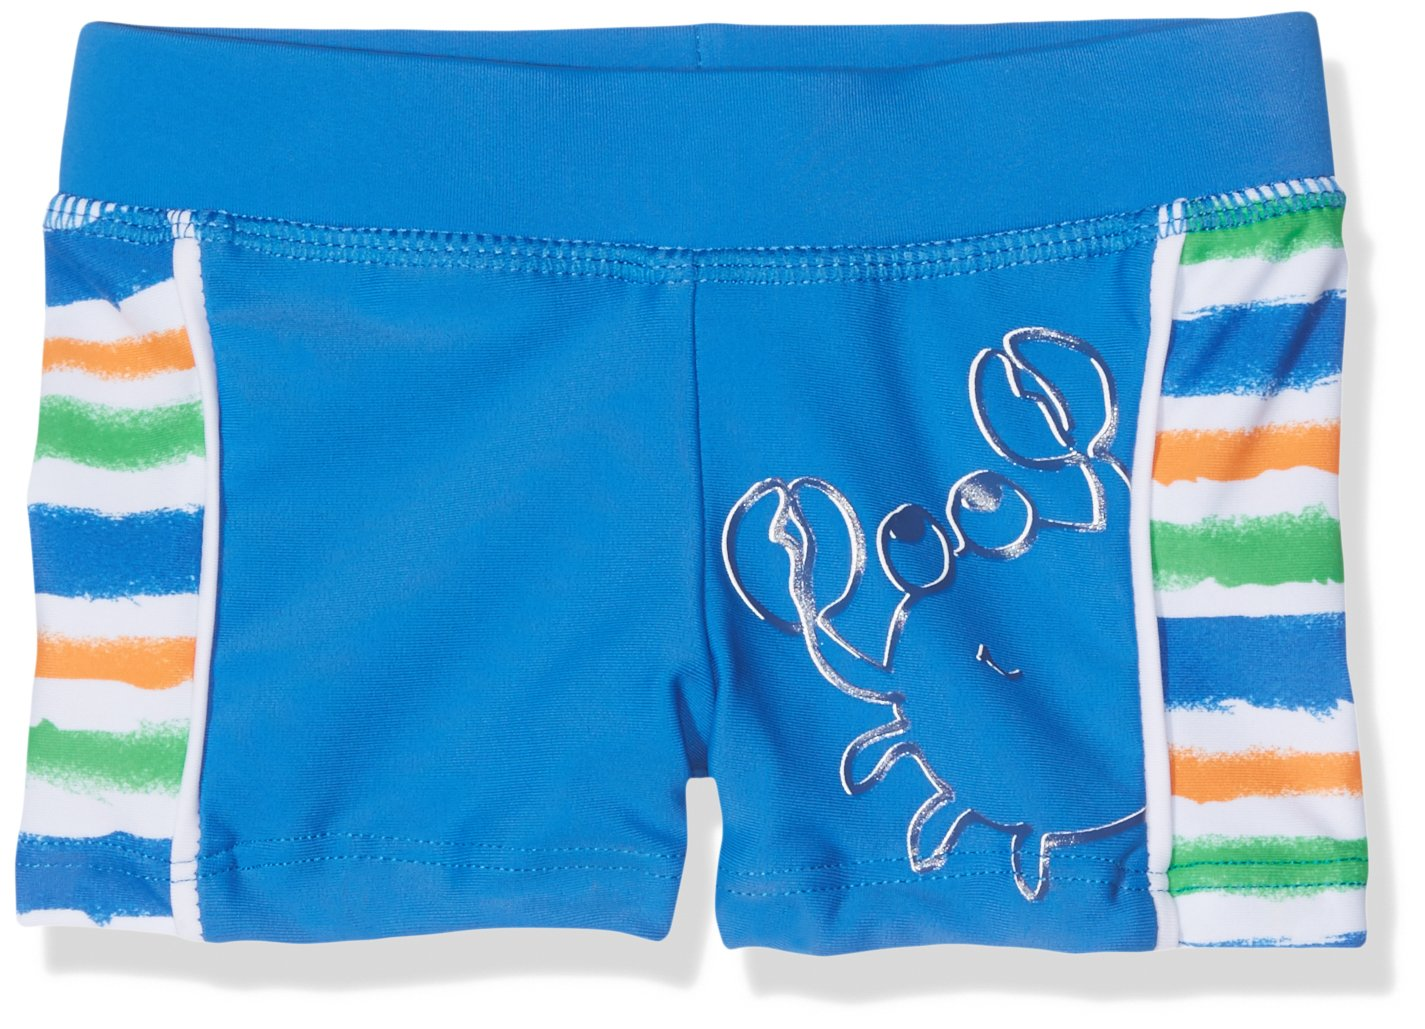 Kanz Boy's Badeshort Swim Trunks